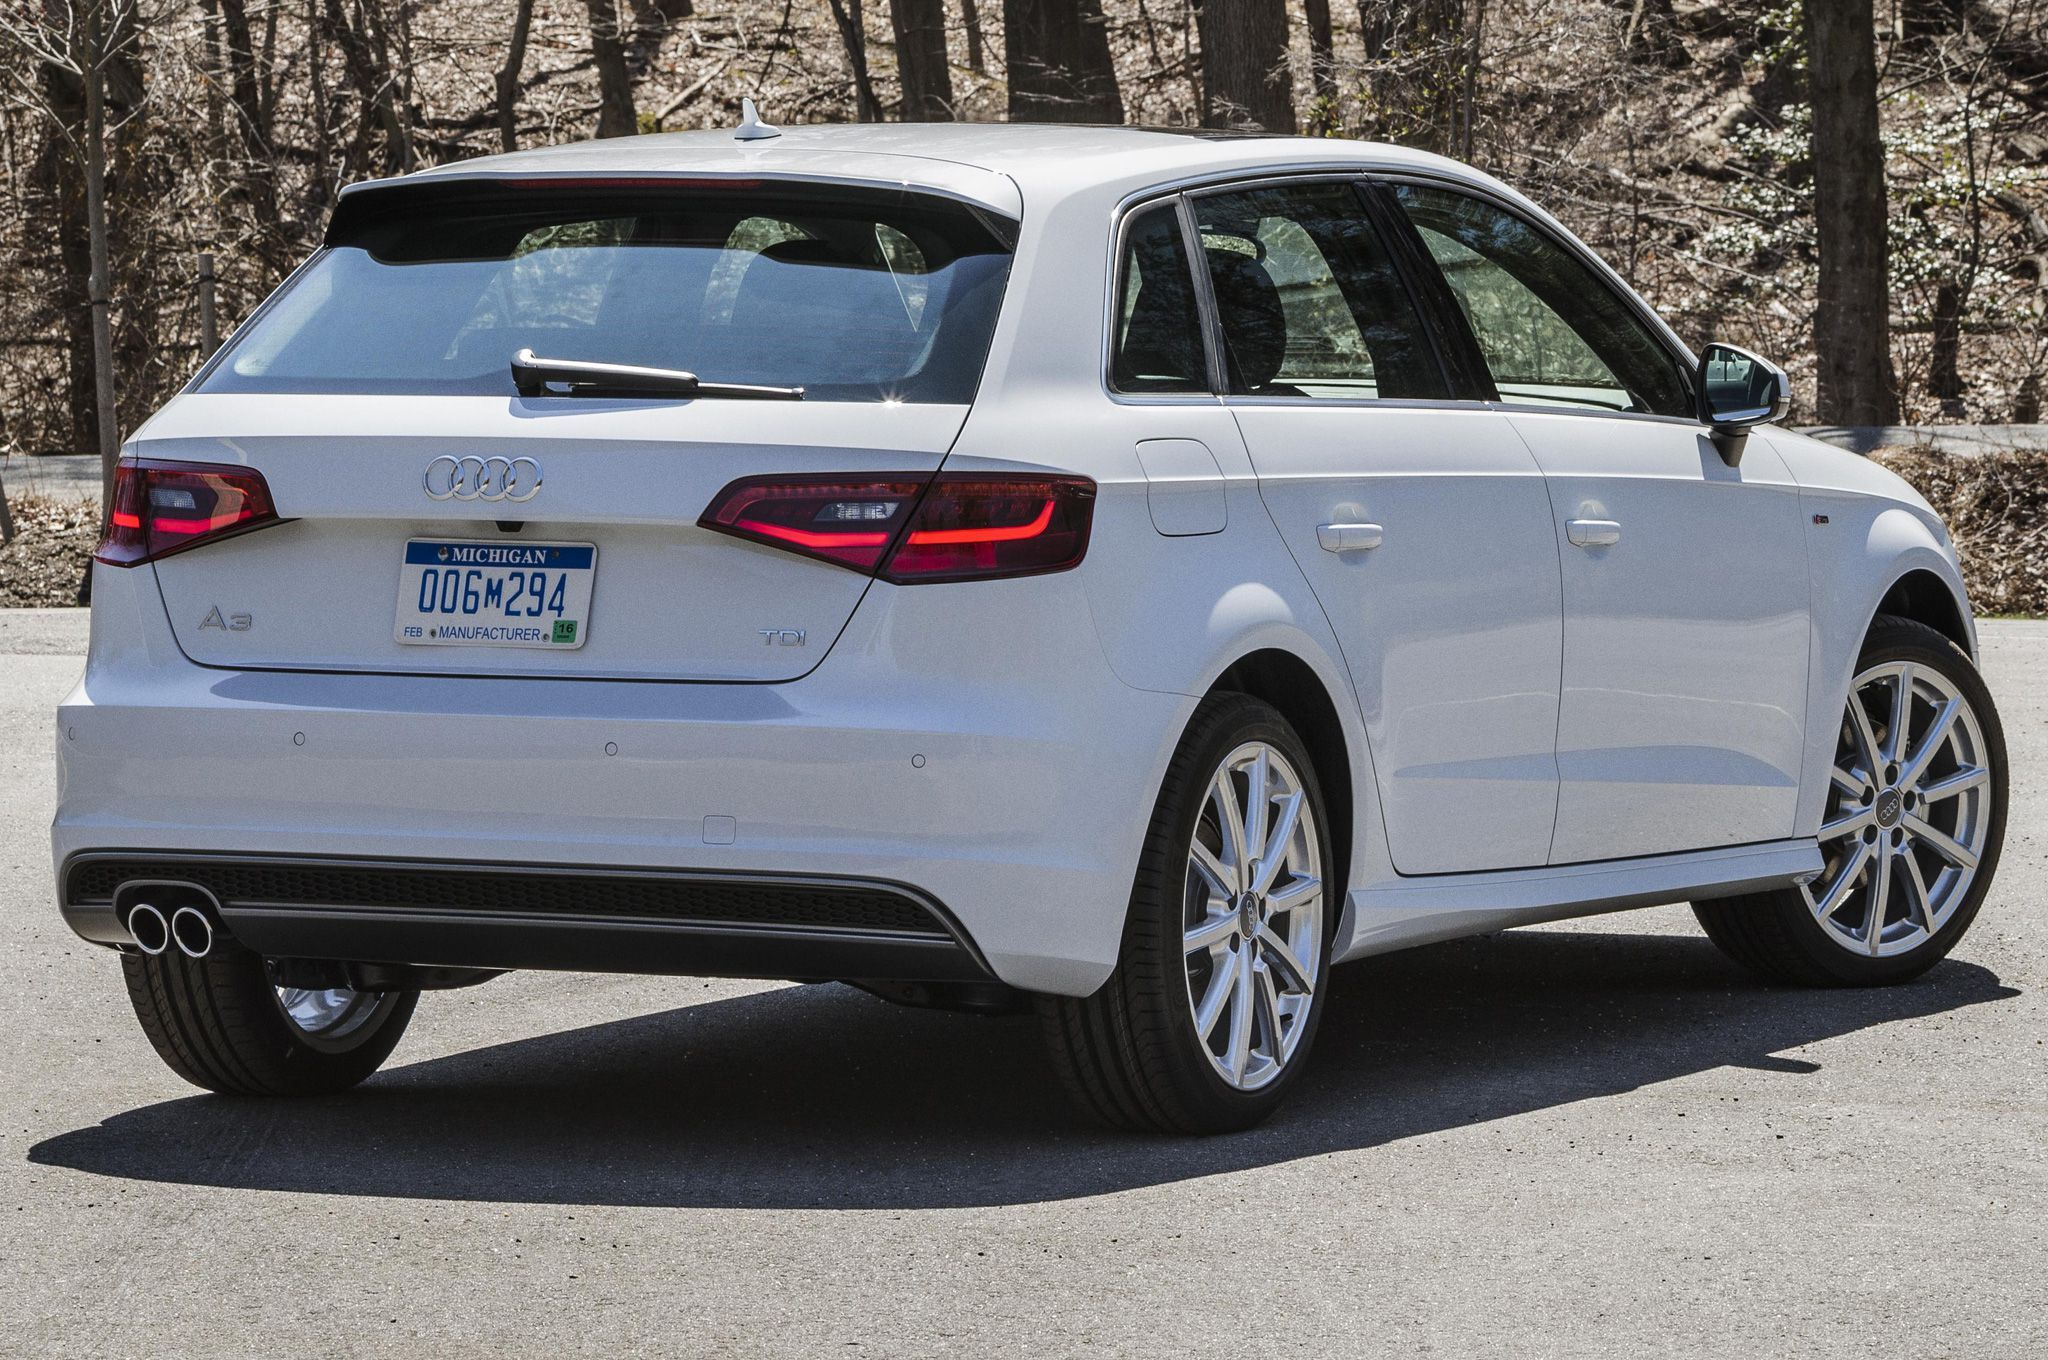 Audi A3 2016 TDI Sportback Specs, Review, Pictures